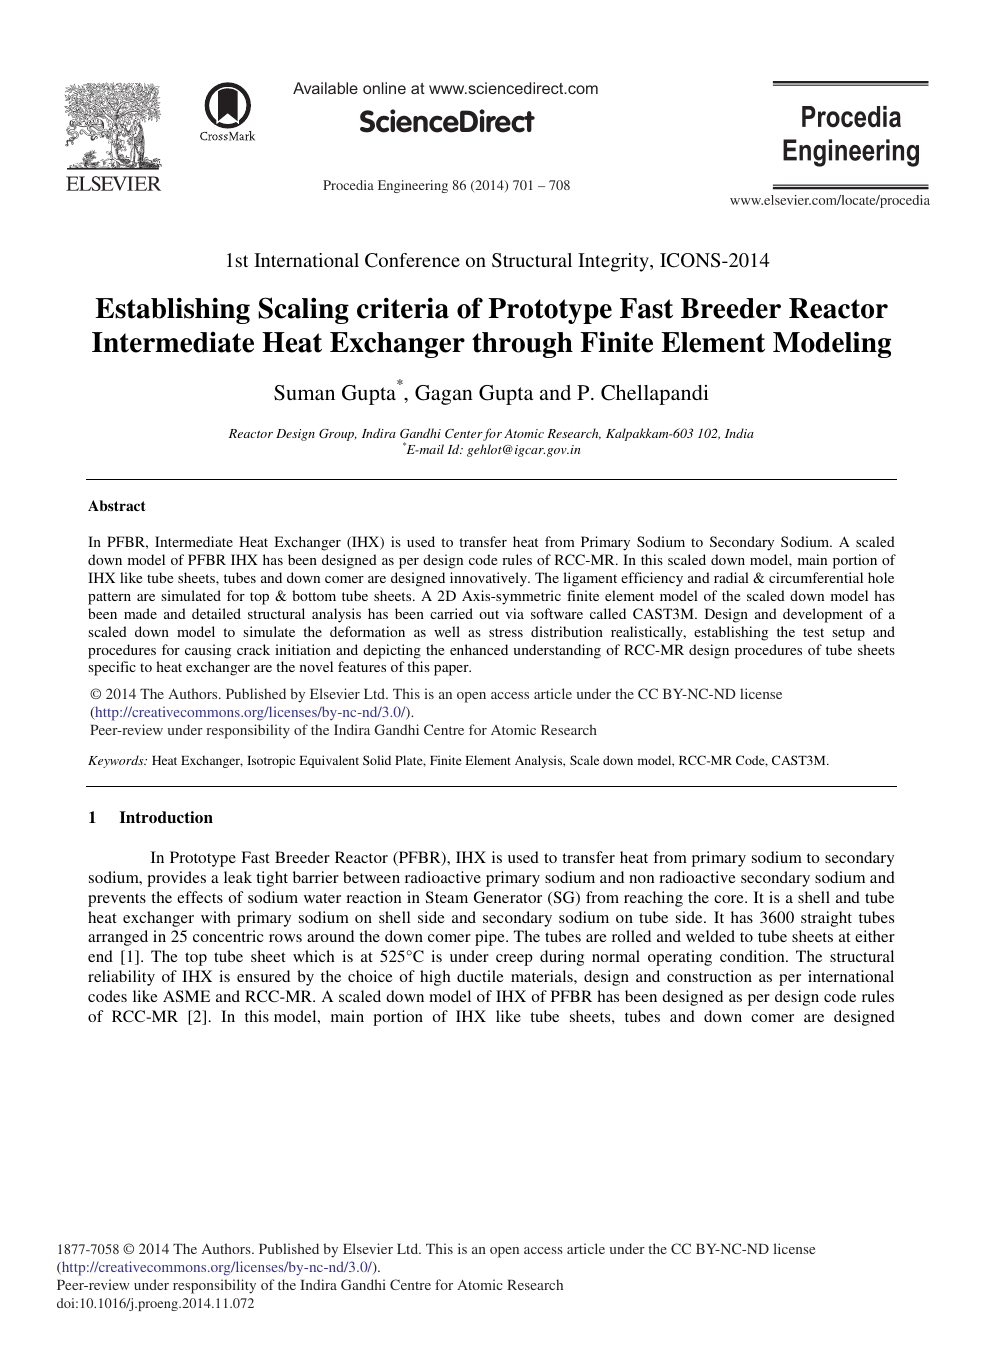 Establishing Scaling Criteria Of Prototype Fast Breeder Reactor Intermediate Heat Exchanger Through Finite Element Modeling Topic Of Research Paper In Materials Engineering Download Scholarly Article Pdf And Read For Free On